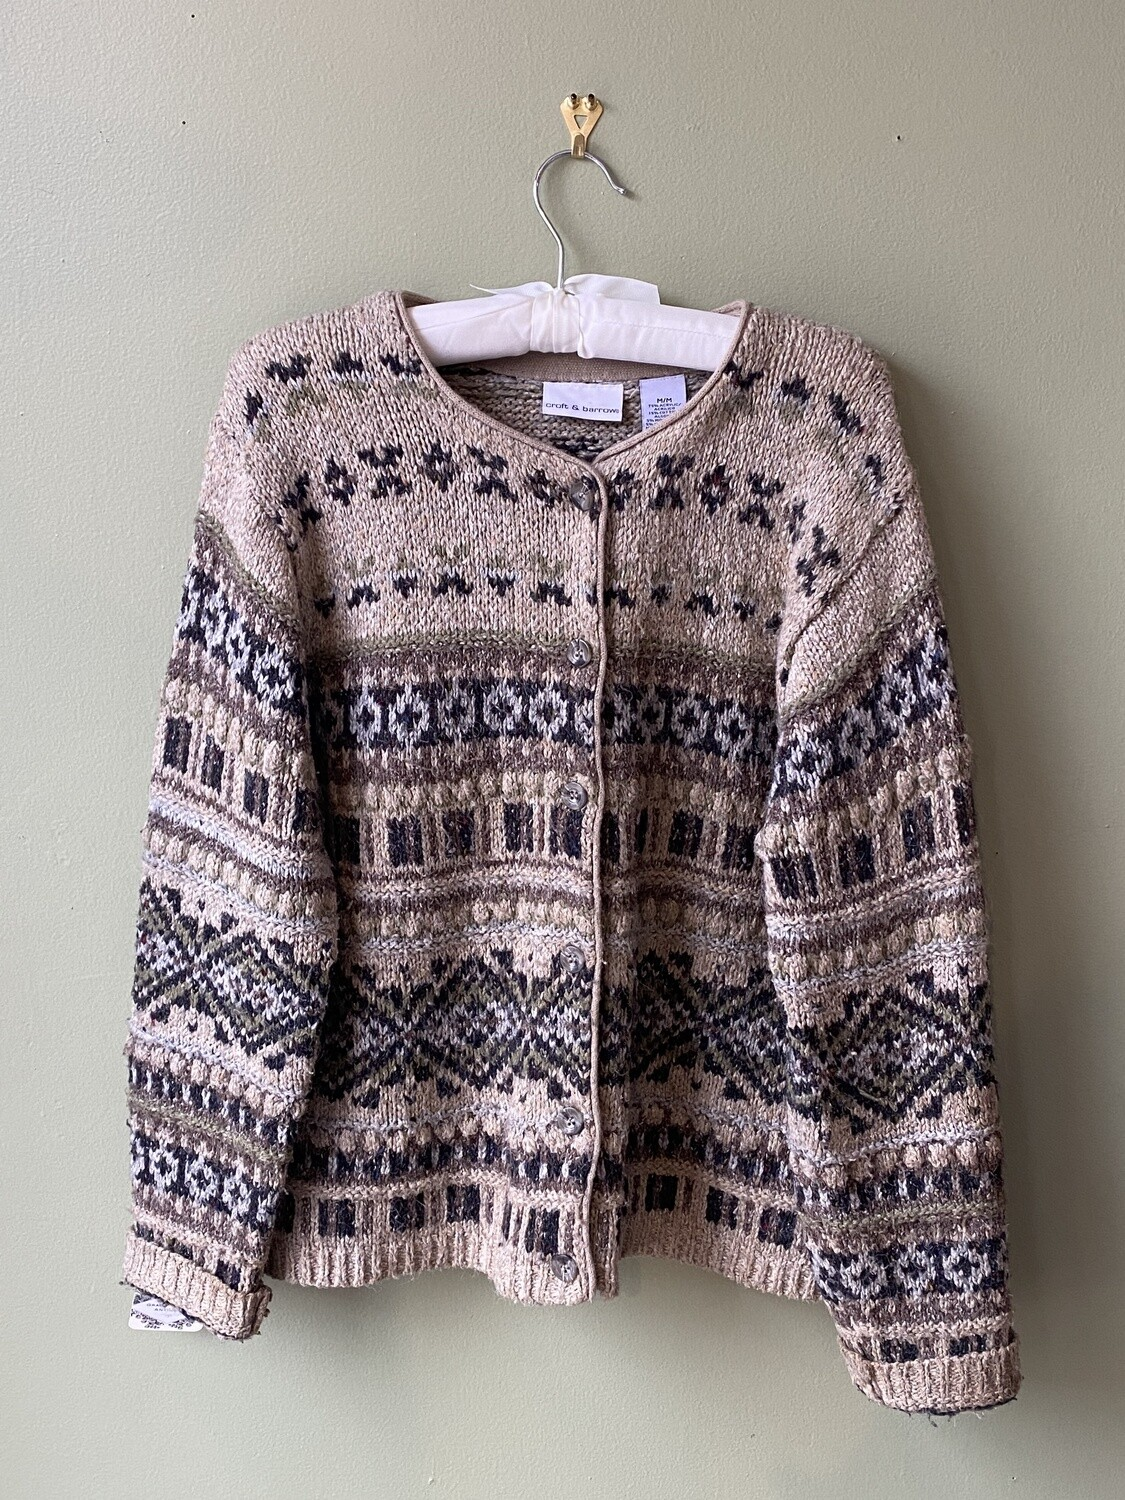 Croft and Barrow Button-front Sweater, Size M